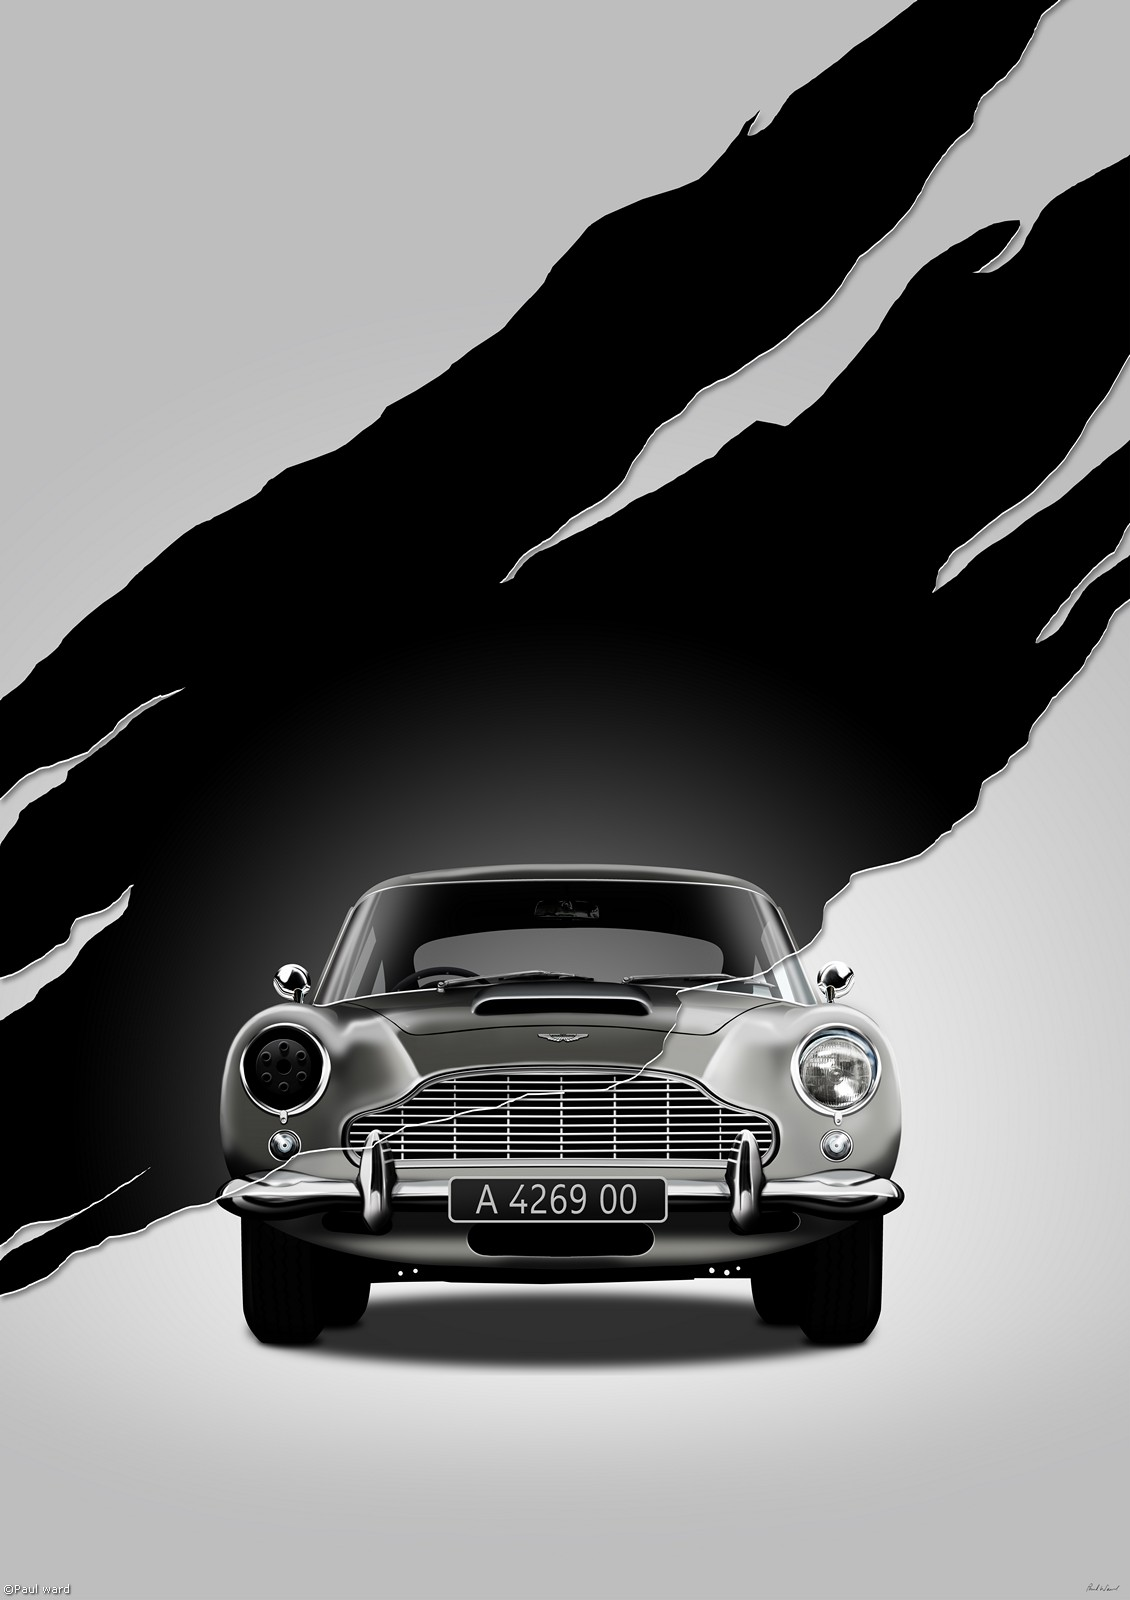 Aston Martin DB5 no time to die car, digital art by Birmingham car photographer Paul Ward. Classic cars, supercars, Automotive.